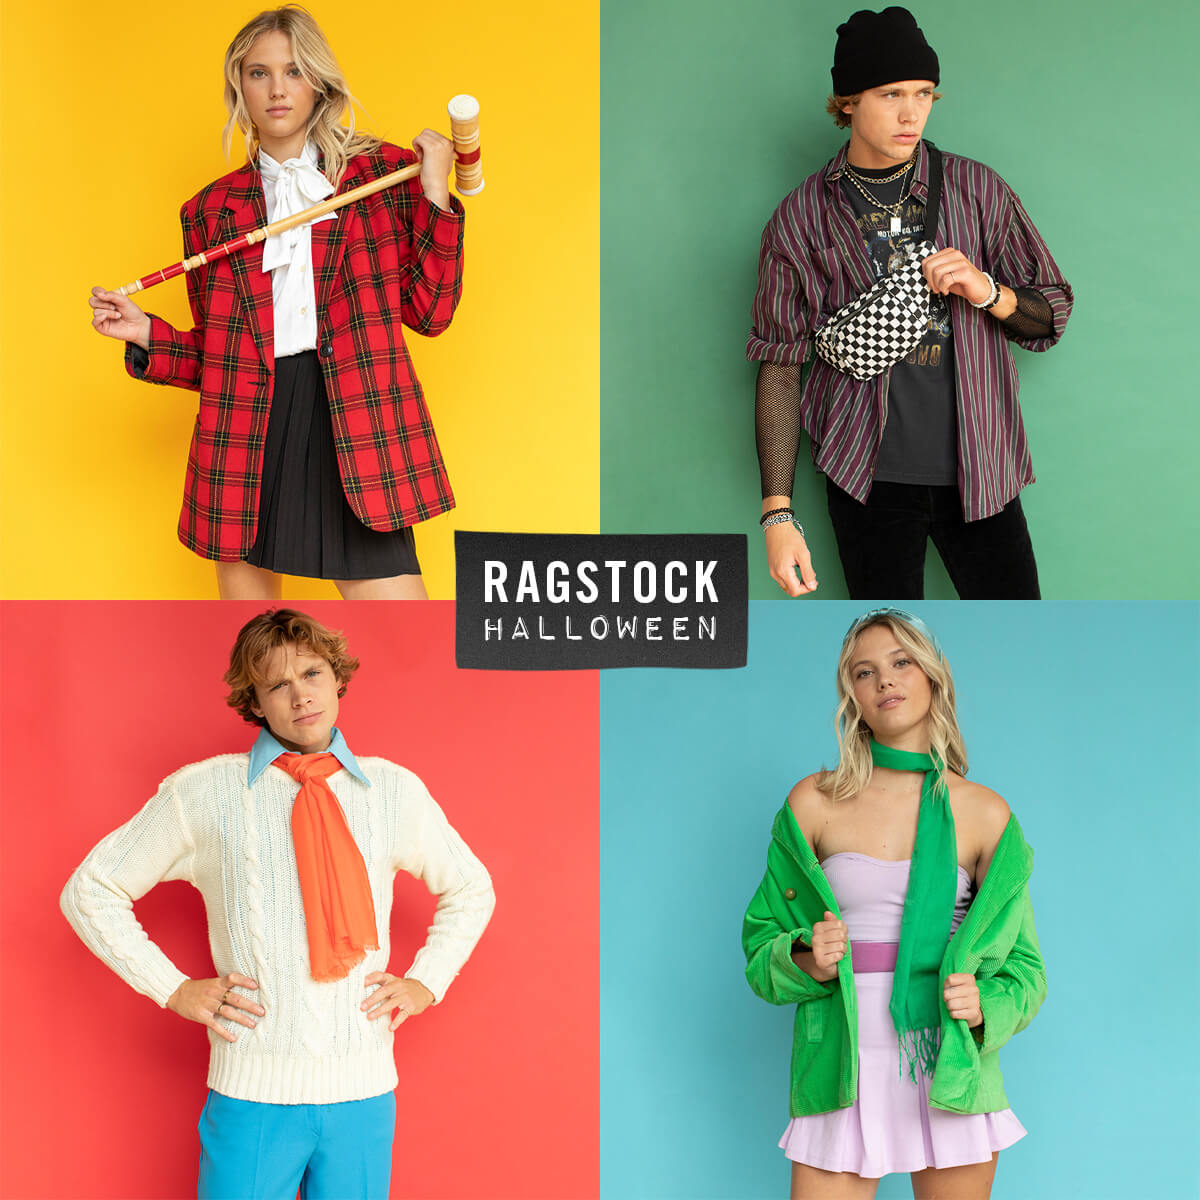 Four different teens wearing apparel styled as the Scooby Doo characters